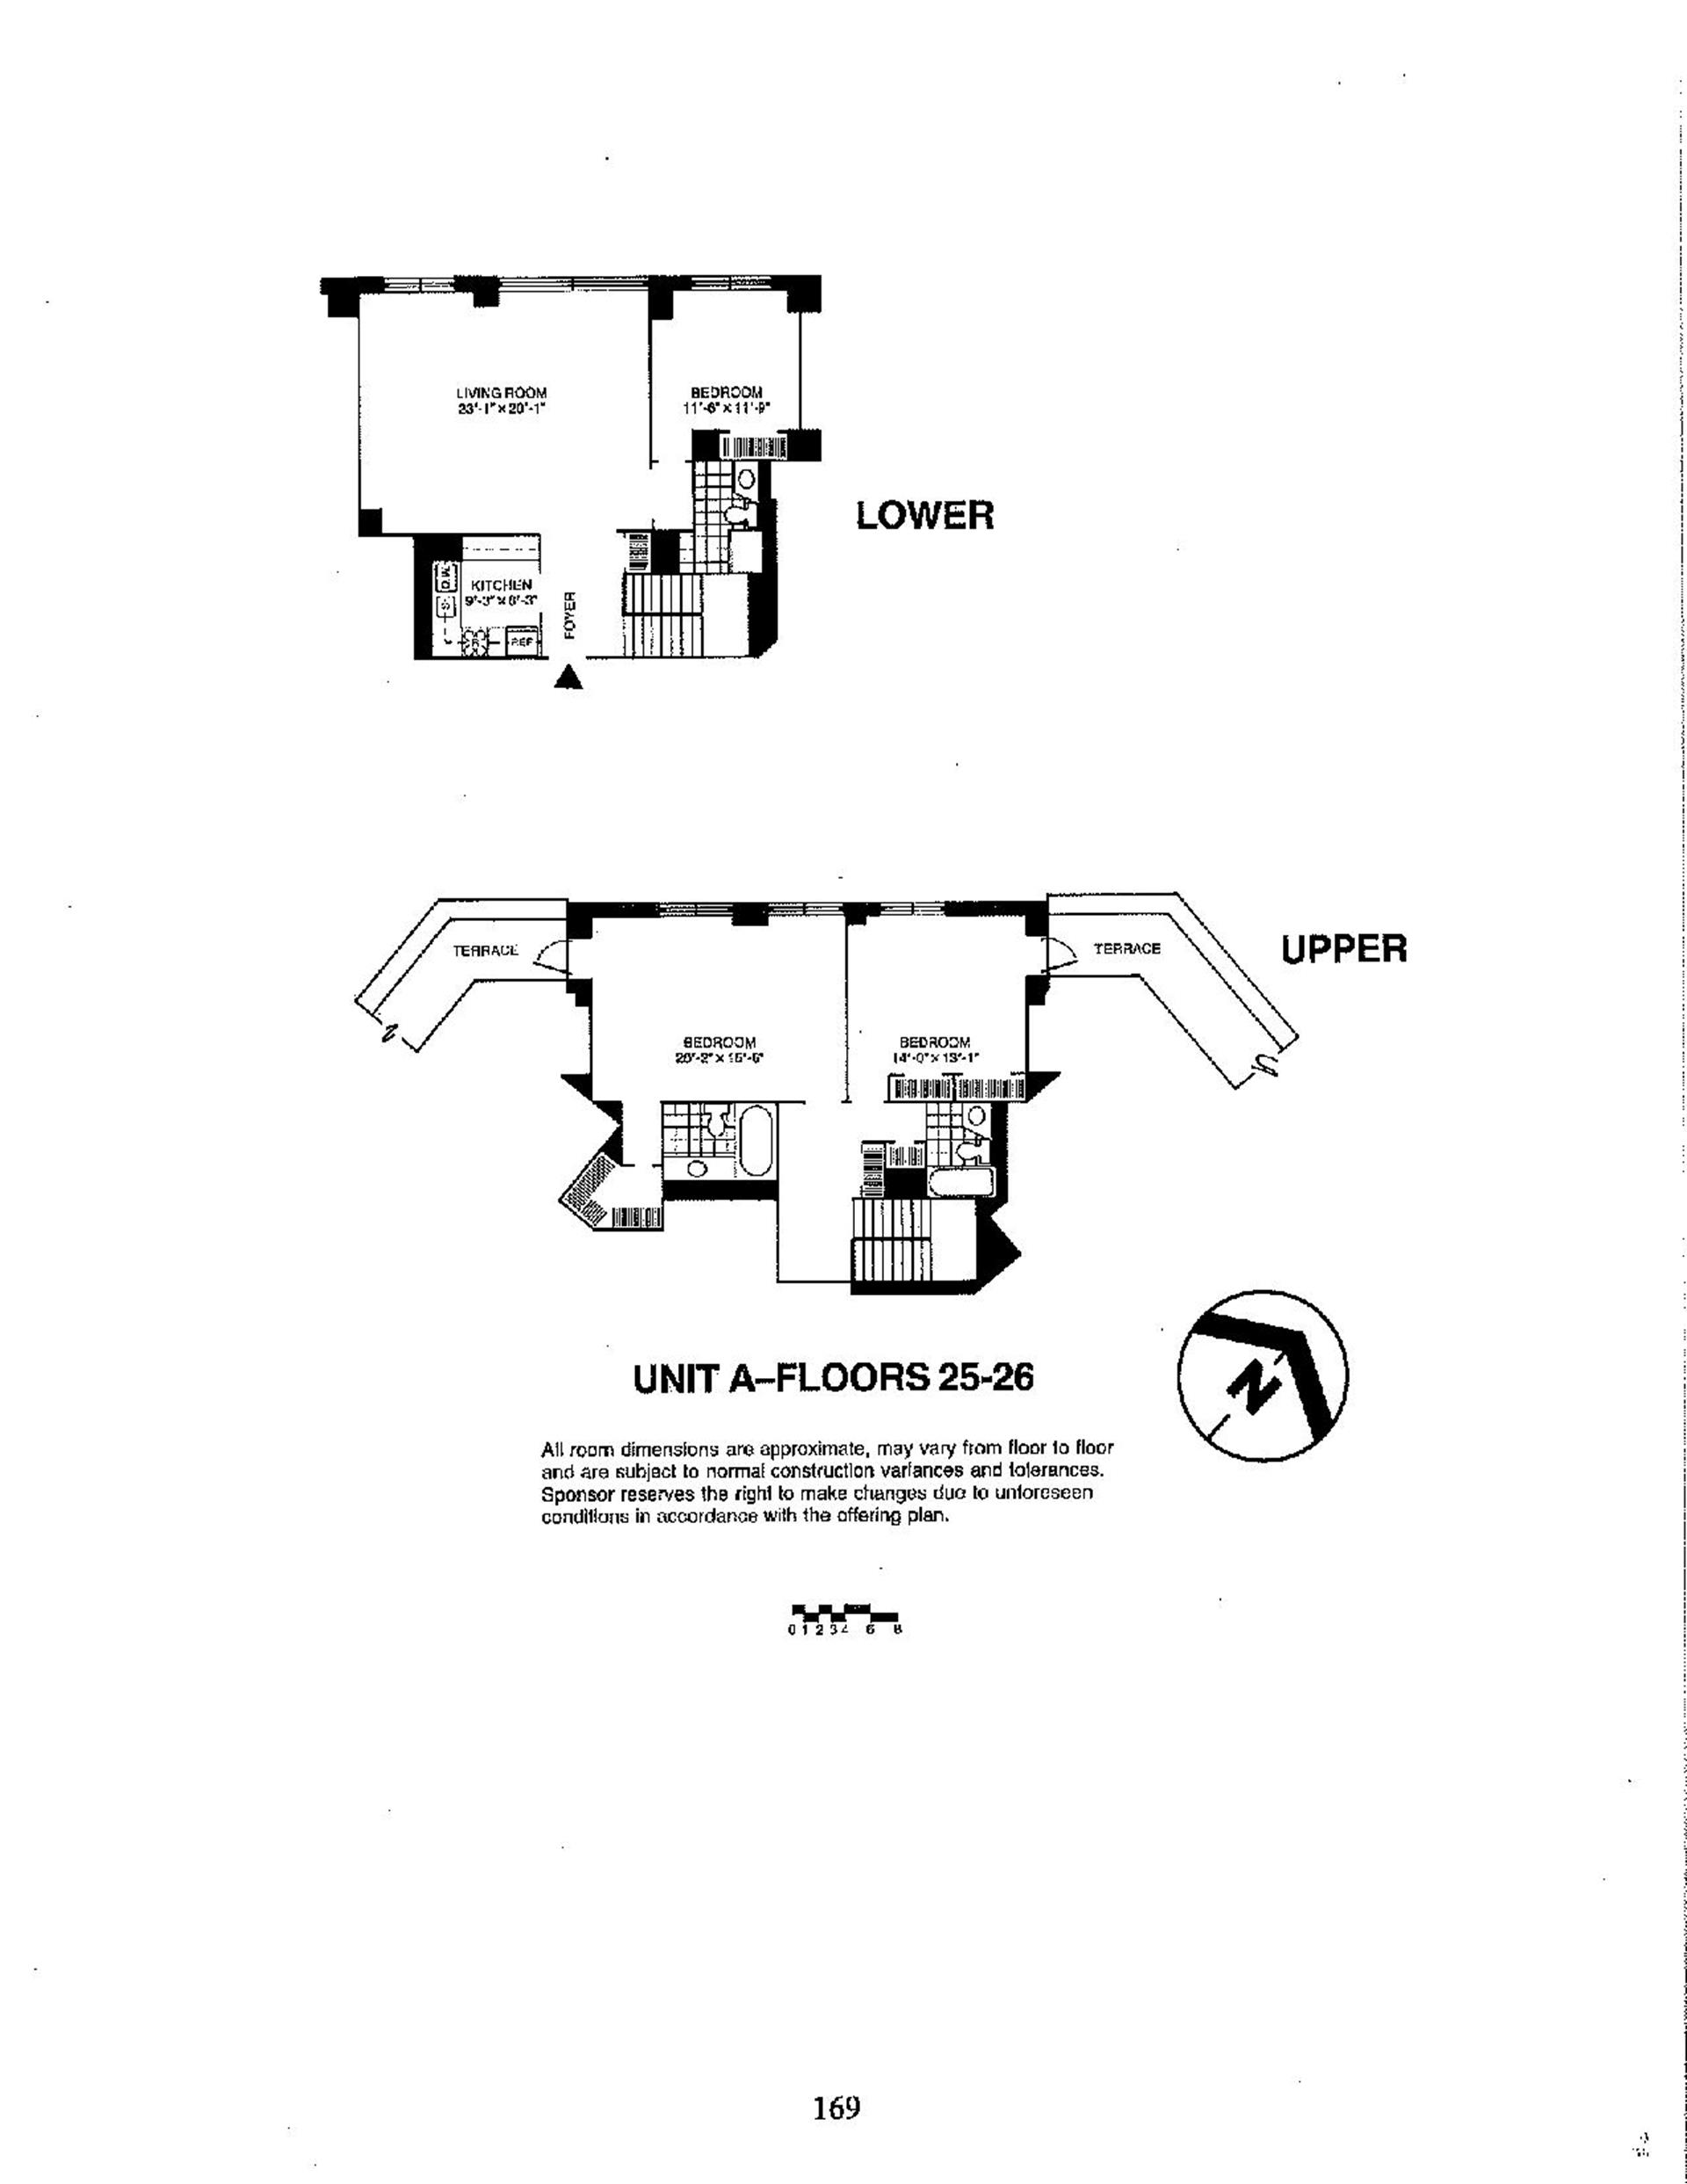 Floor plan of Liberty Residences, 380 Rector Pl, PHA - Battery Park City, New York